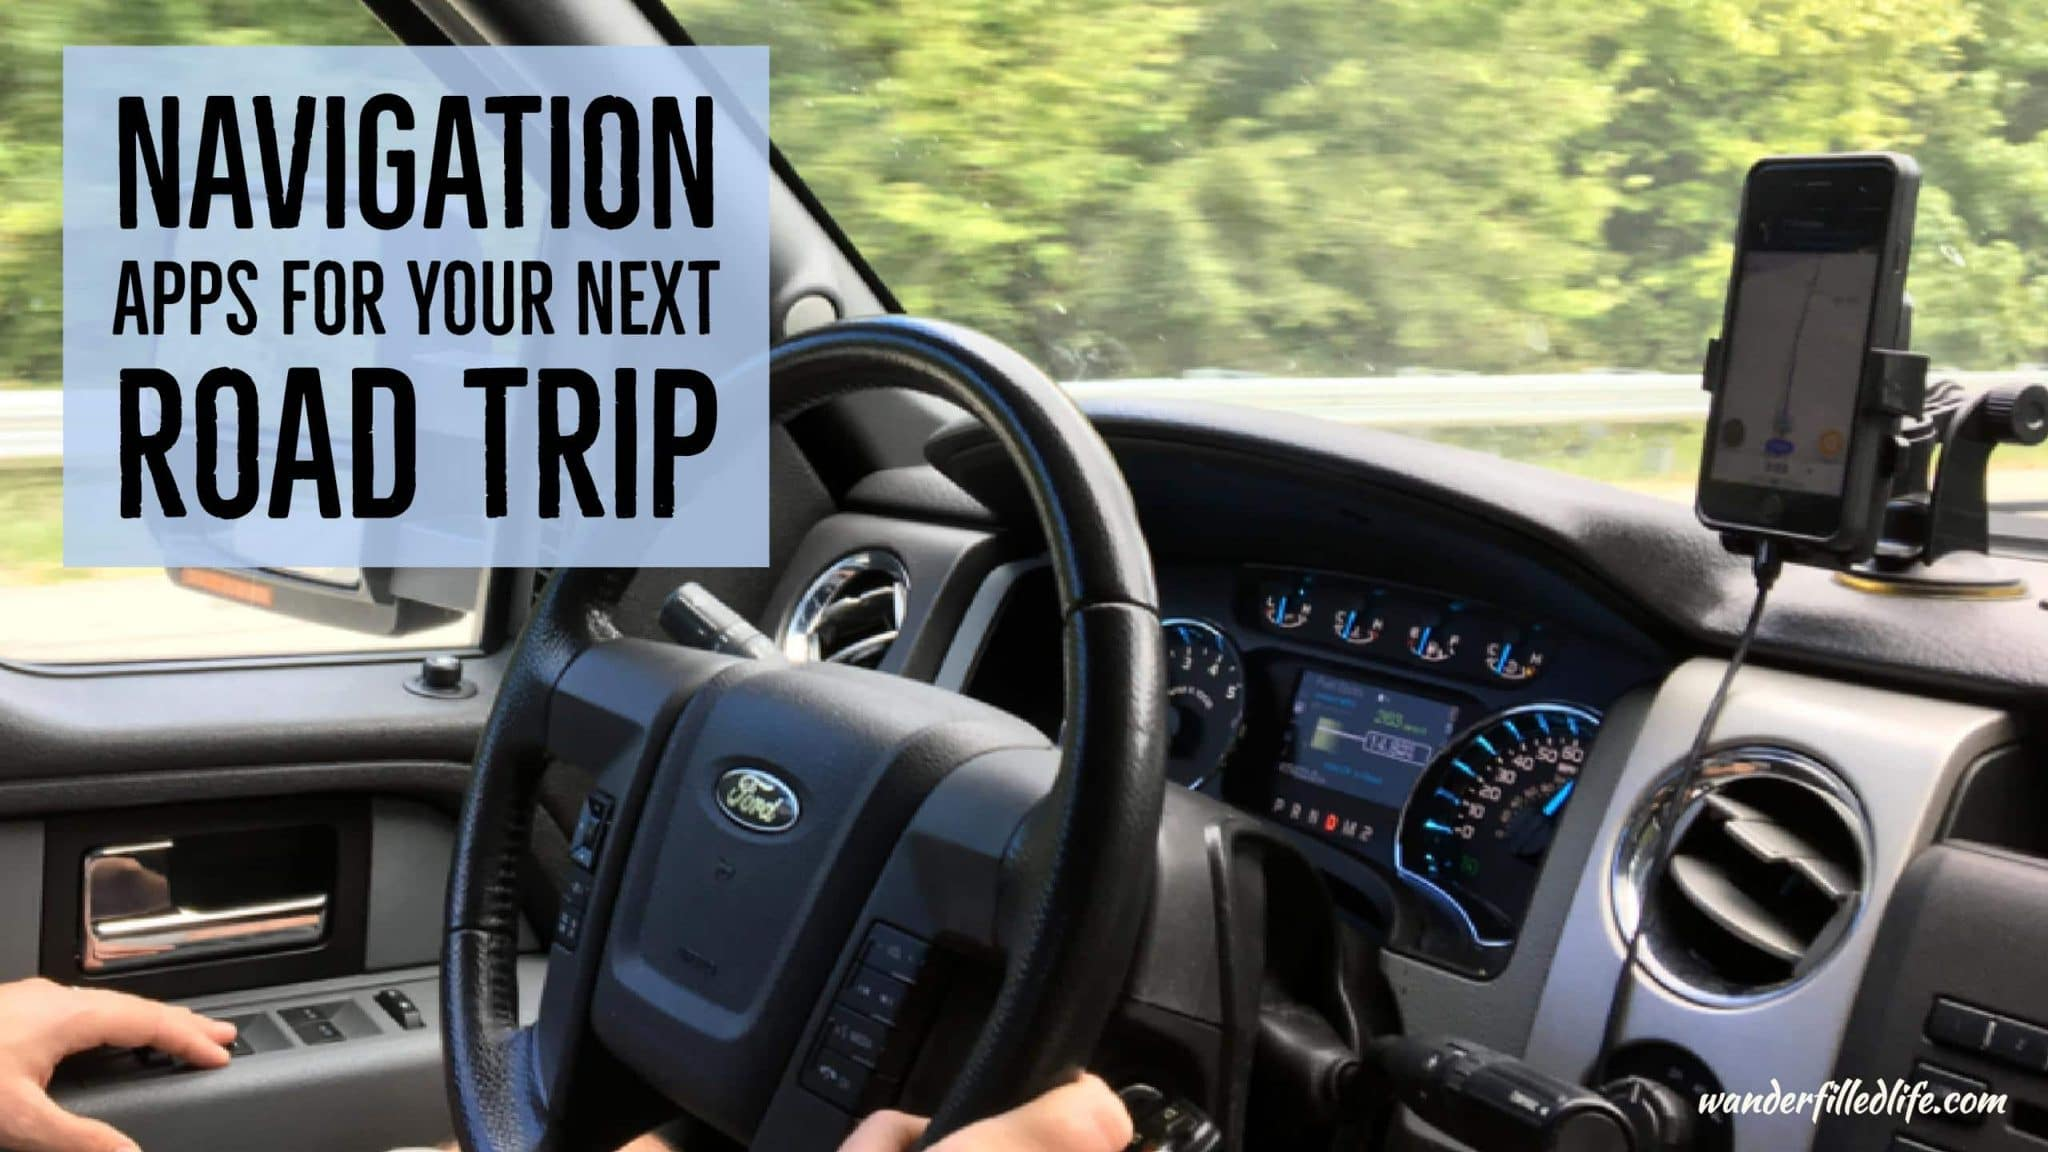 Navigation Apps for Your Next Road Trip